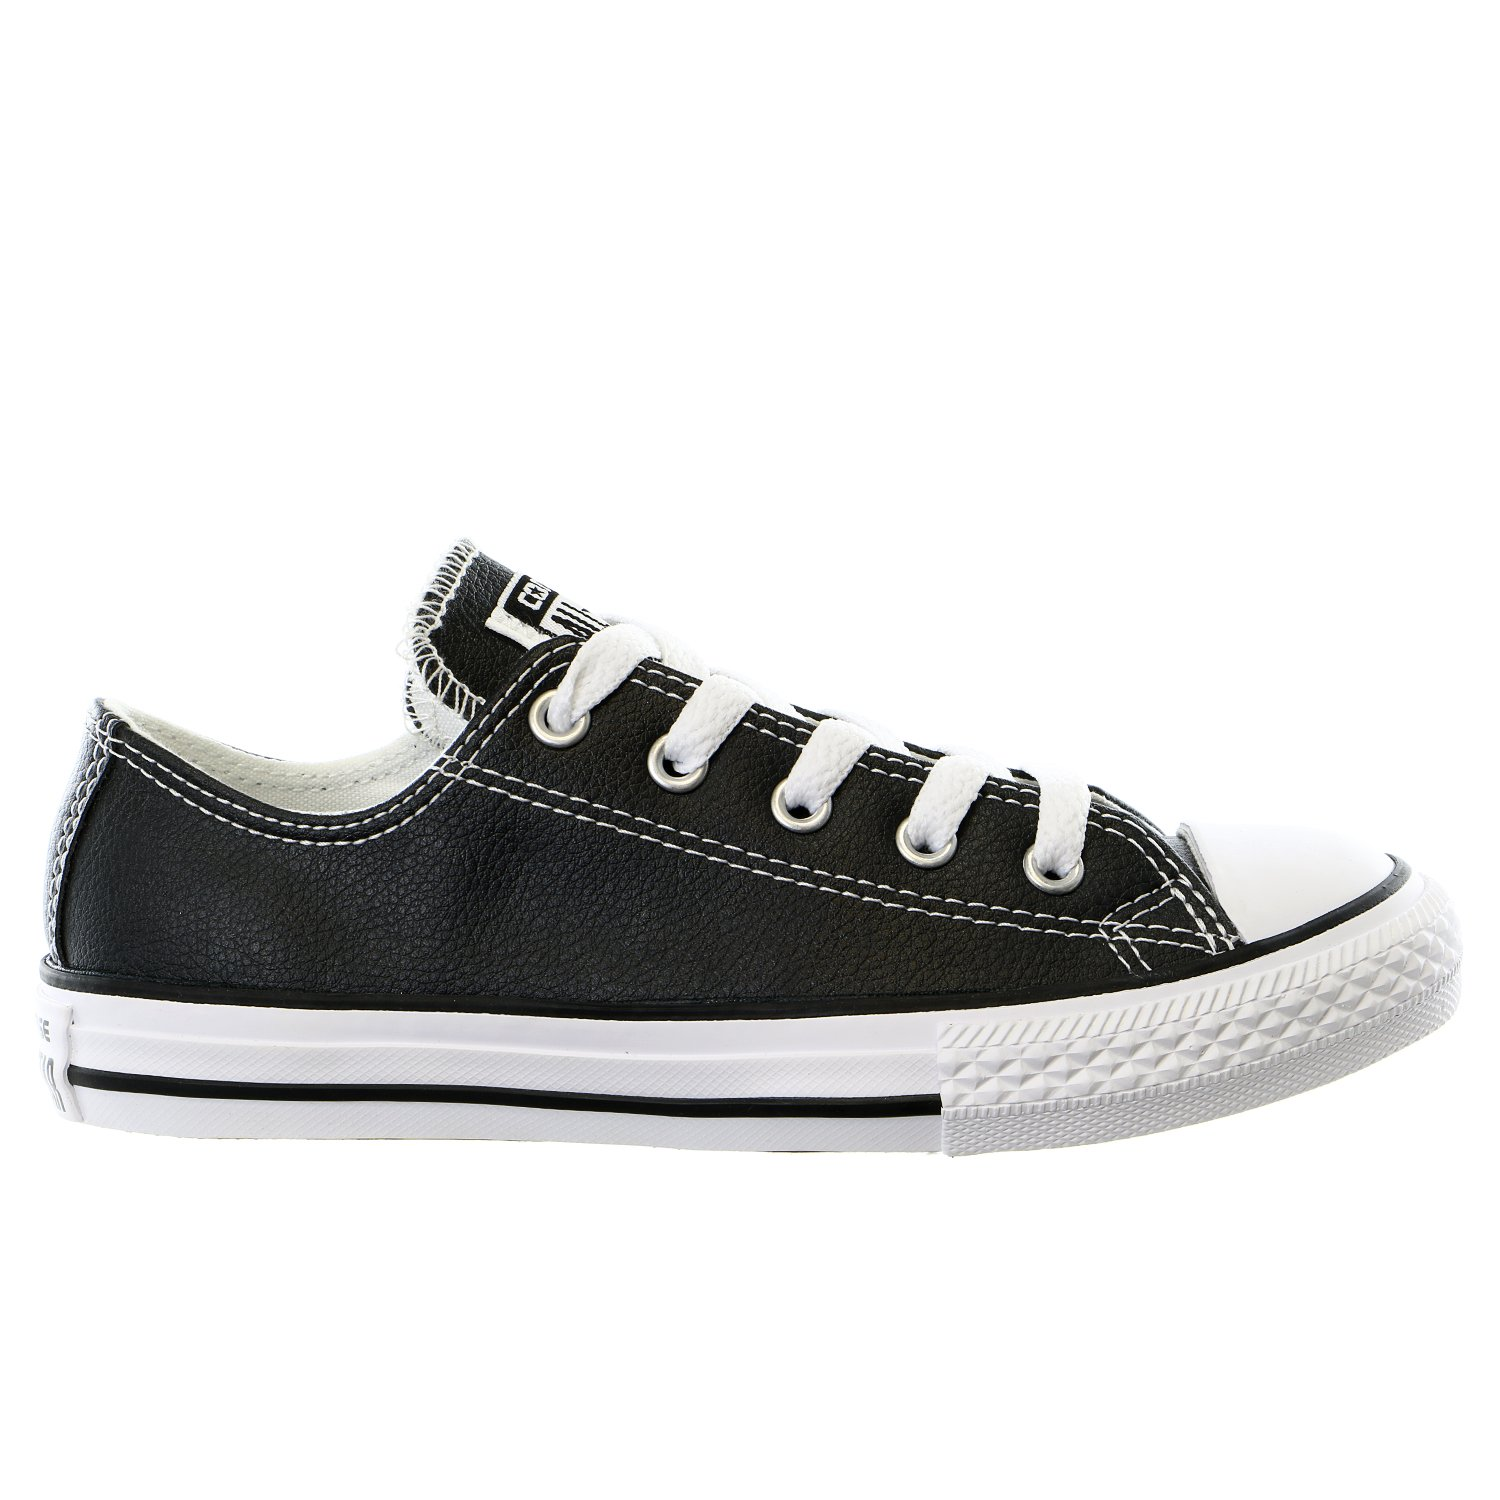 CONVERSE Kid's Chuck Taylor All Star Leather OX Fashion Sneaker Shoe - Black/White - 13.5